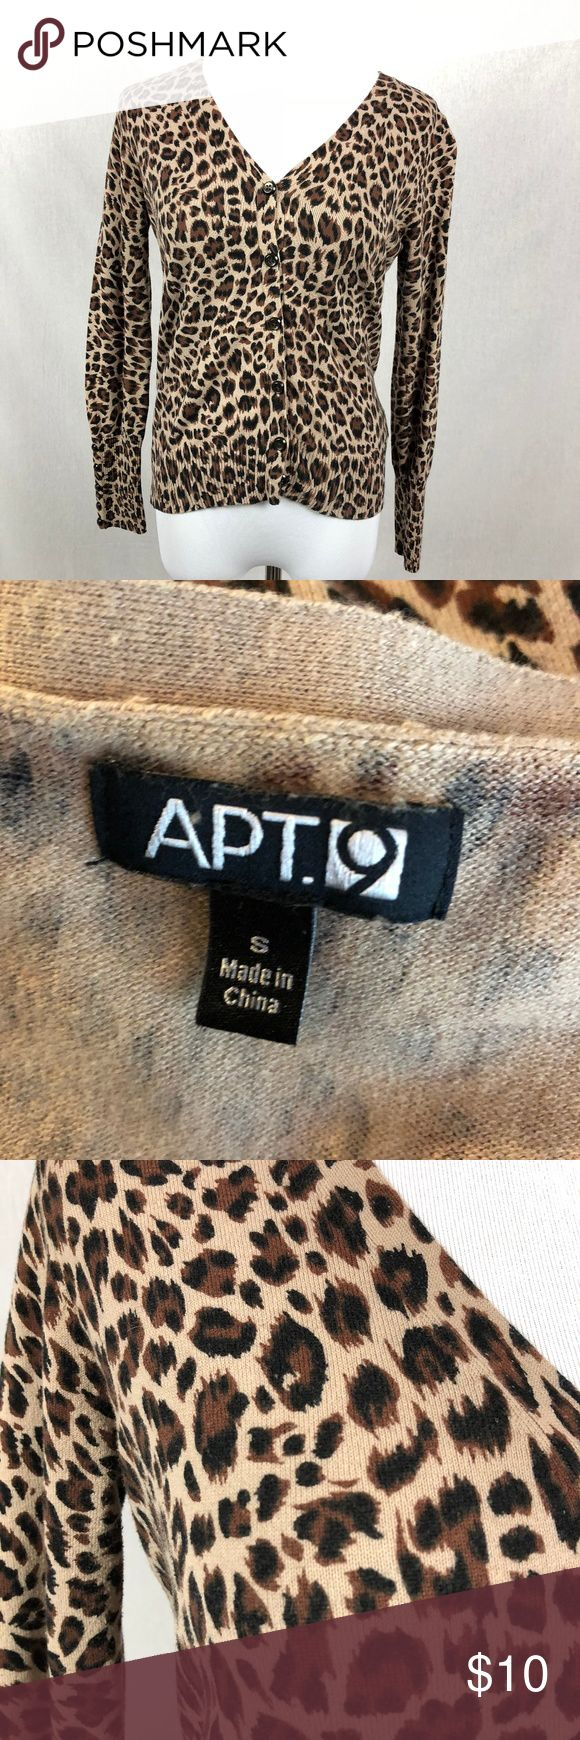 """APT 9 Leopard print v-neck cardigan sweater Women's APT 9 Leopard animal print button up cardigan. size small. some fuzzing/pilling to fabric  armpit to armpit-17"""" overall length-23""""  i179 Apt. 9 Sweaters Cardigans"""